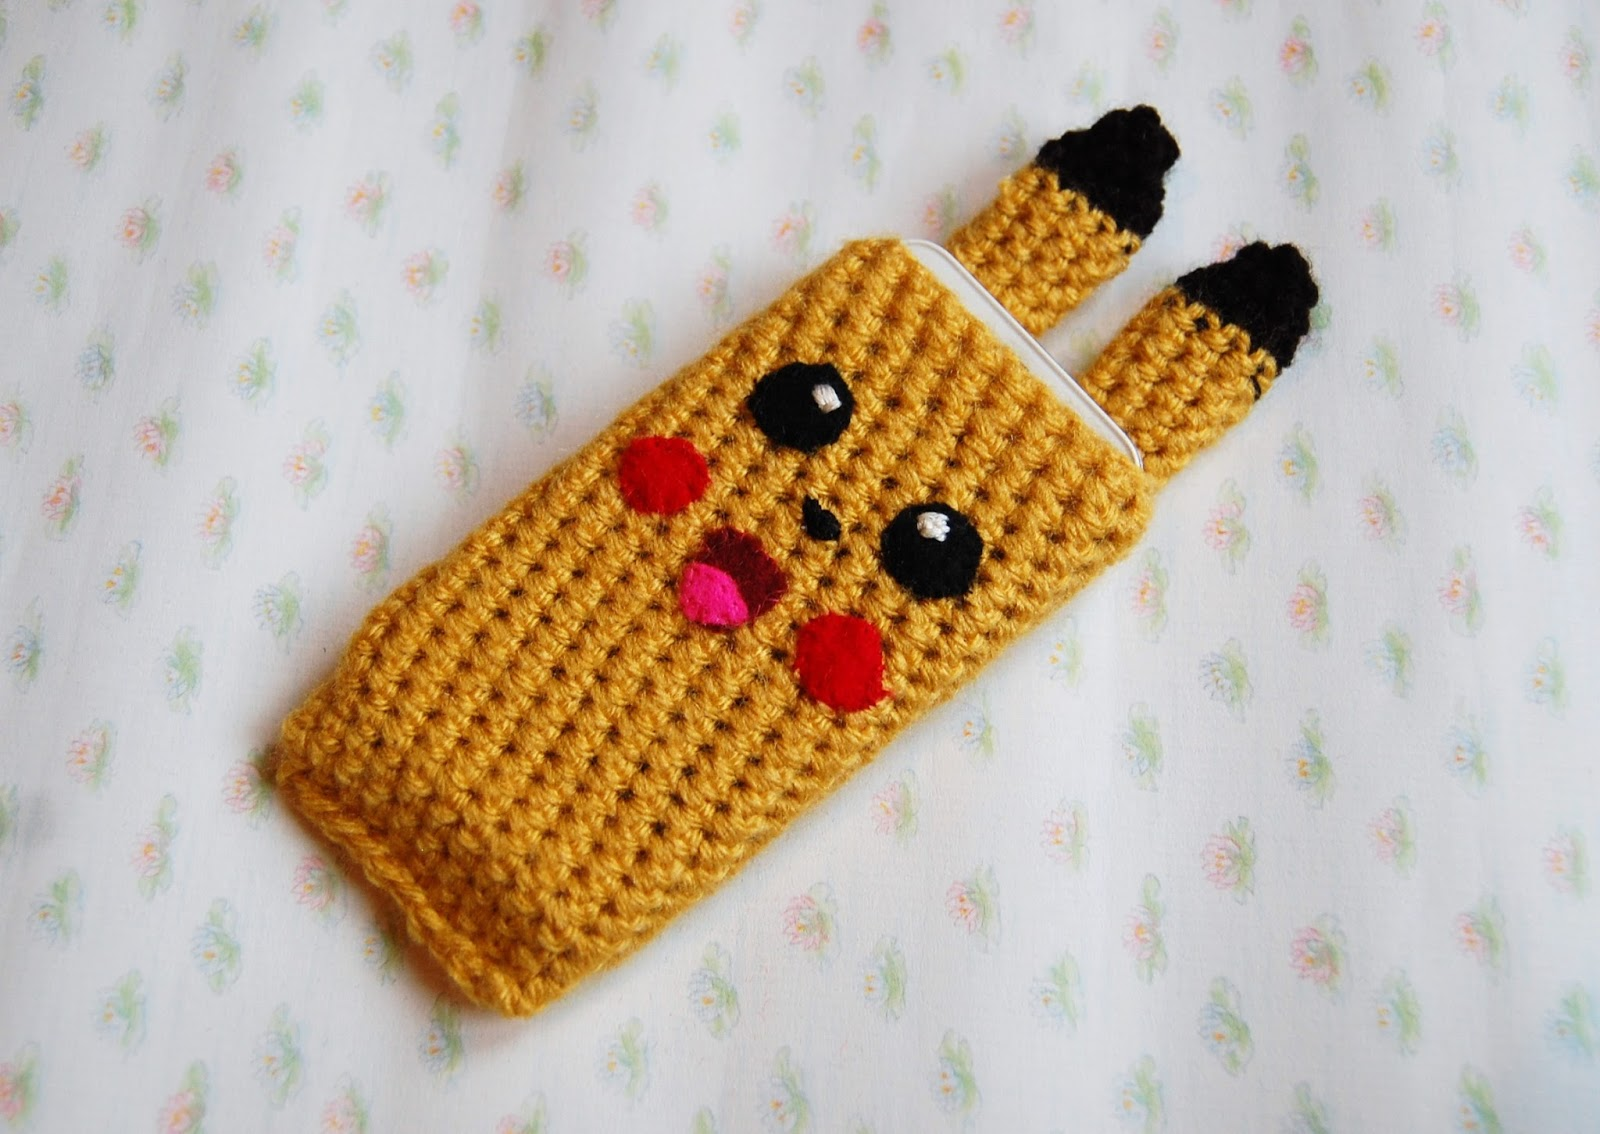 the geeky knitter: pikachu phone cover - free crochet pattern